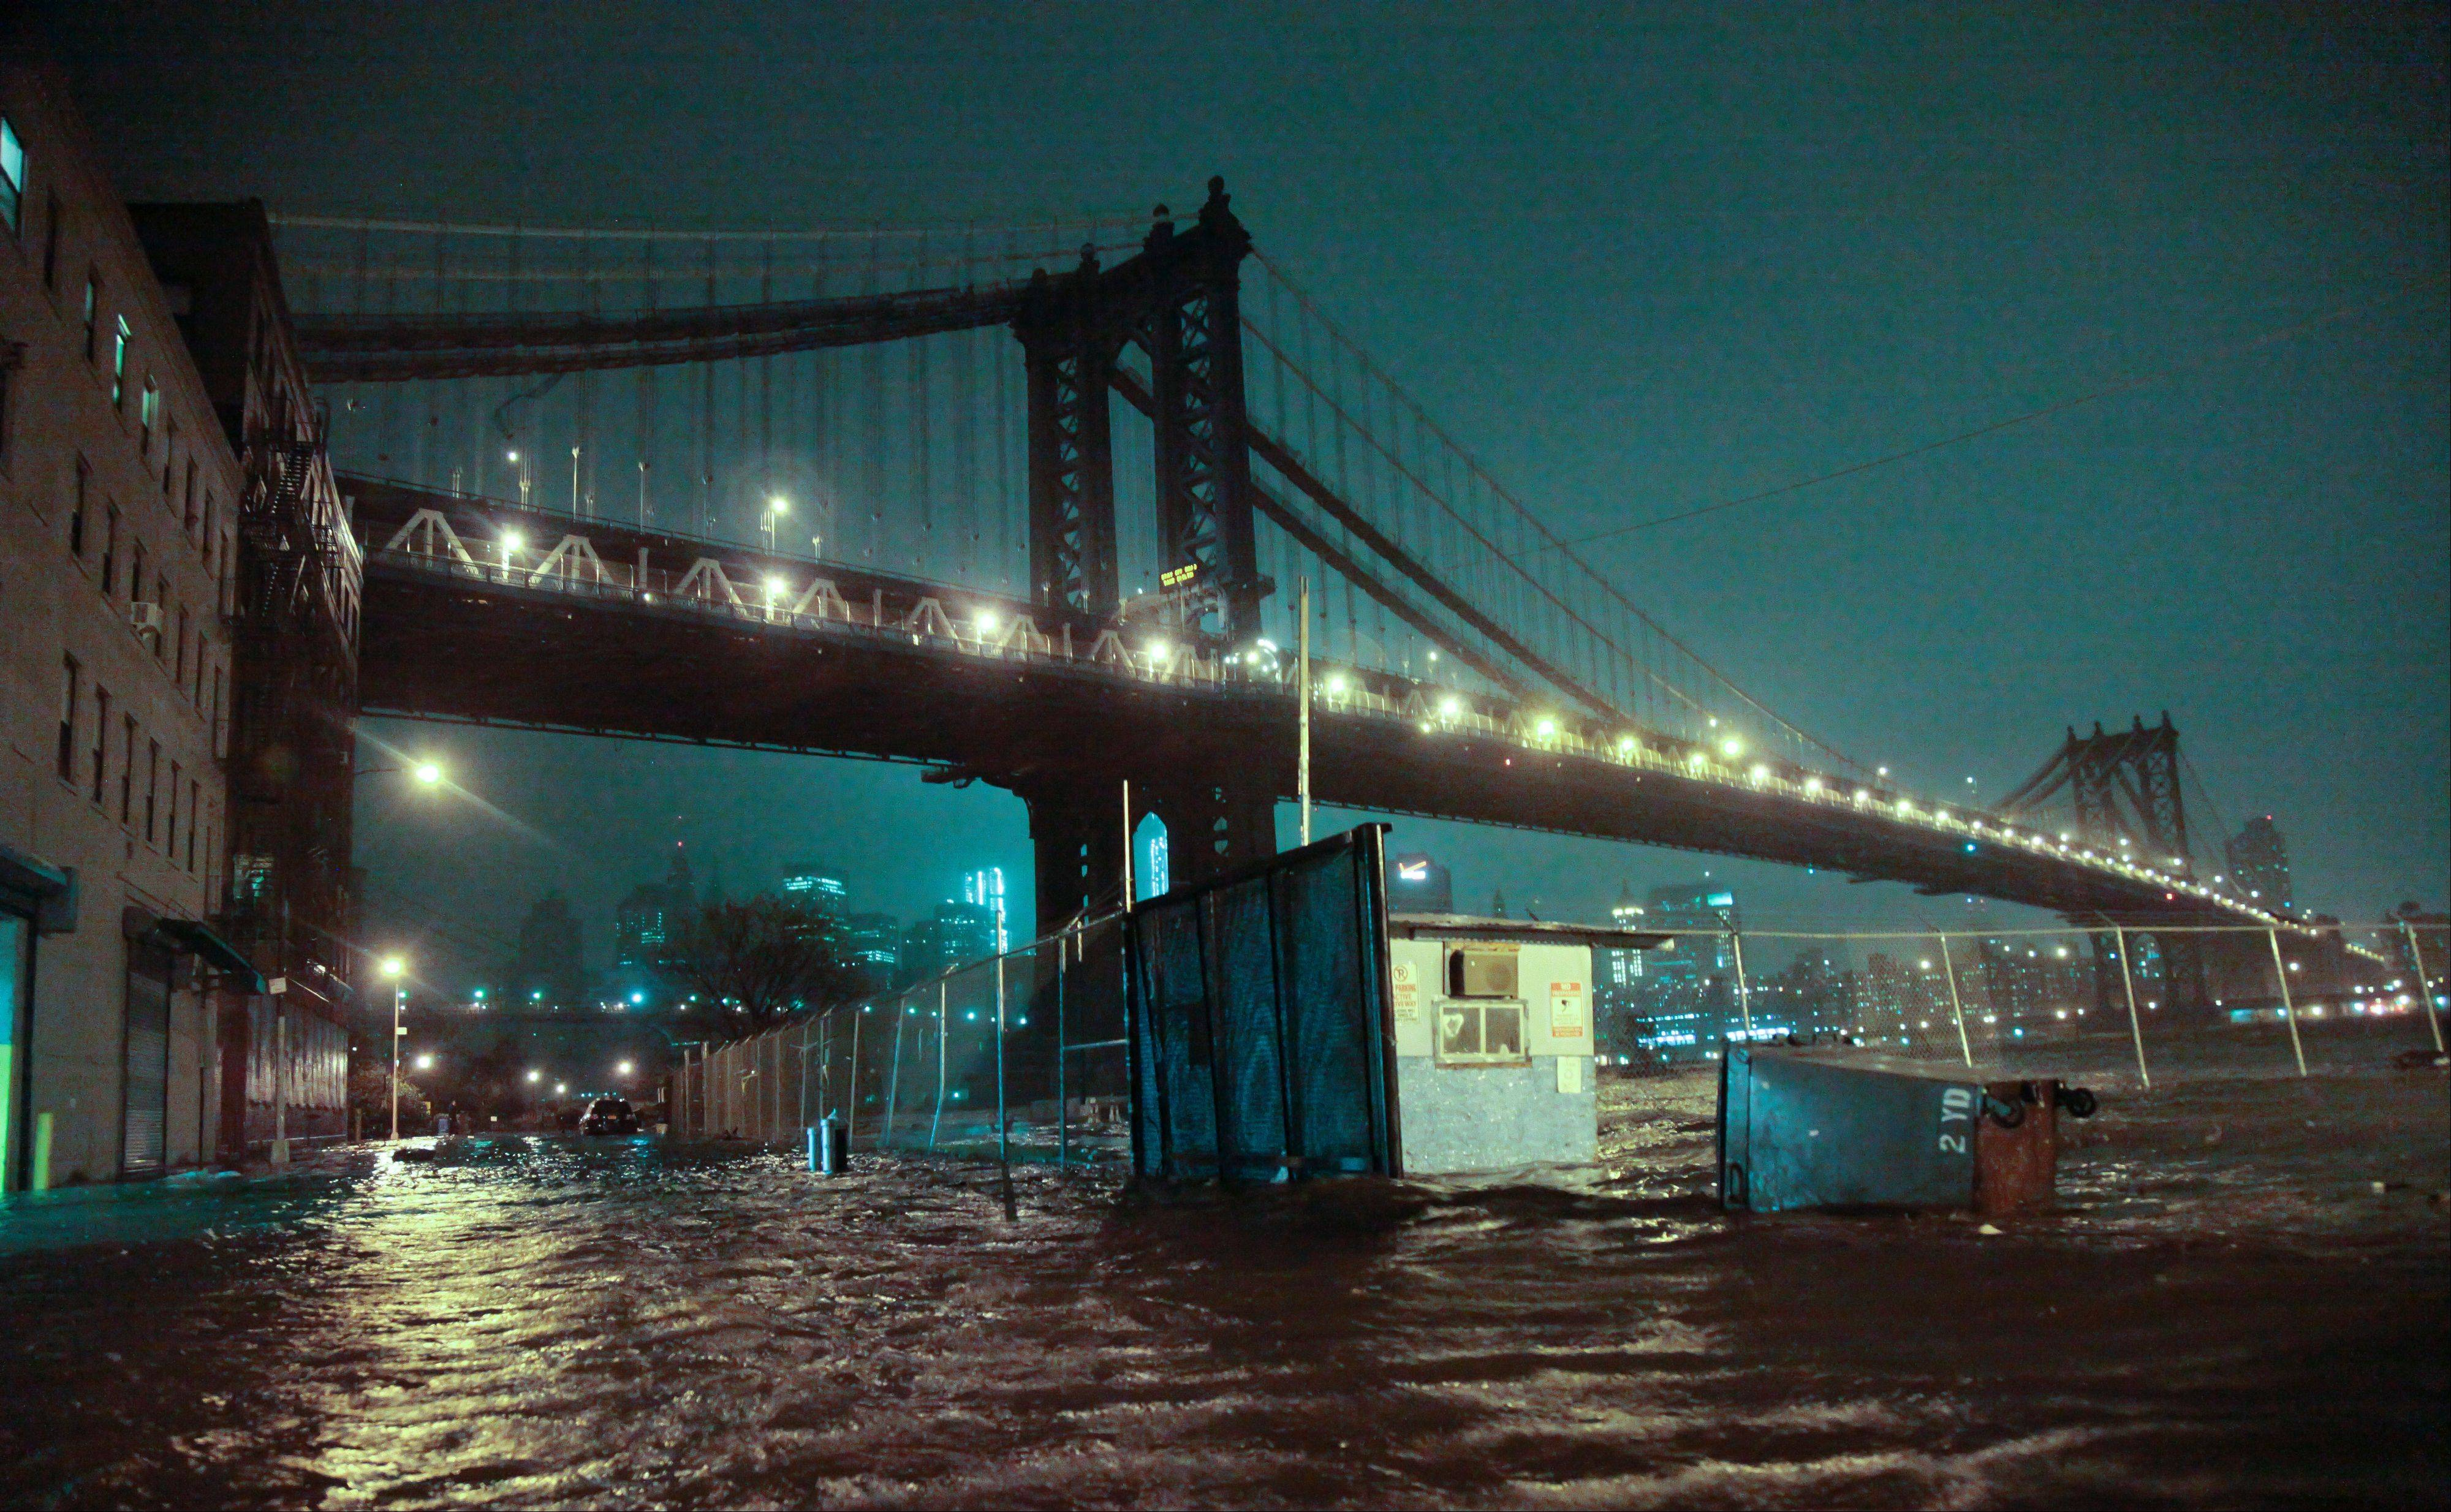 Streets are flooded under the Manhattan Bridge in the Dumbo section of Brooklyn, N.Y., Monday, Oct. 29, 2012. Sandy continued on its path Monday, as the storm forced the shutdown of mass transit, schools and financial markets, sending coastal residents fleeing, and threatening a dangerous mix of high winds and soaking rain.